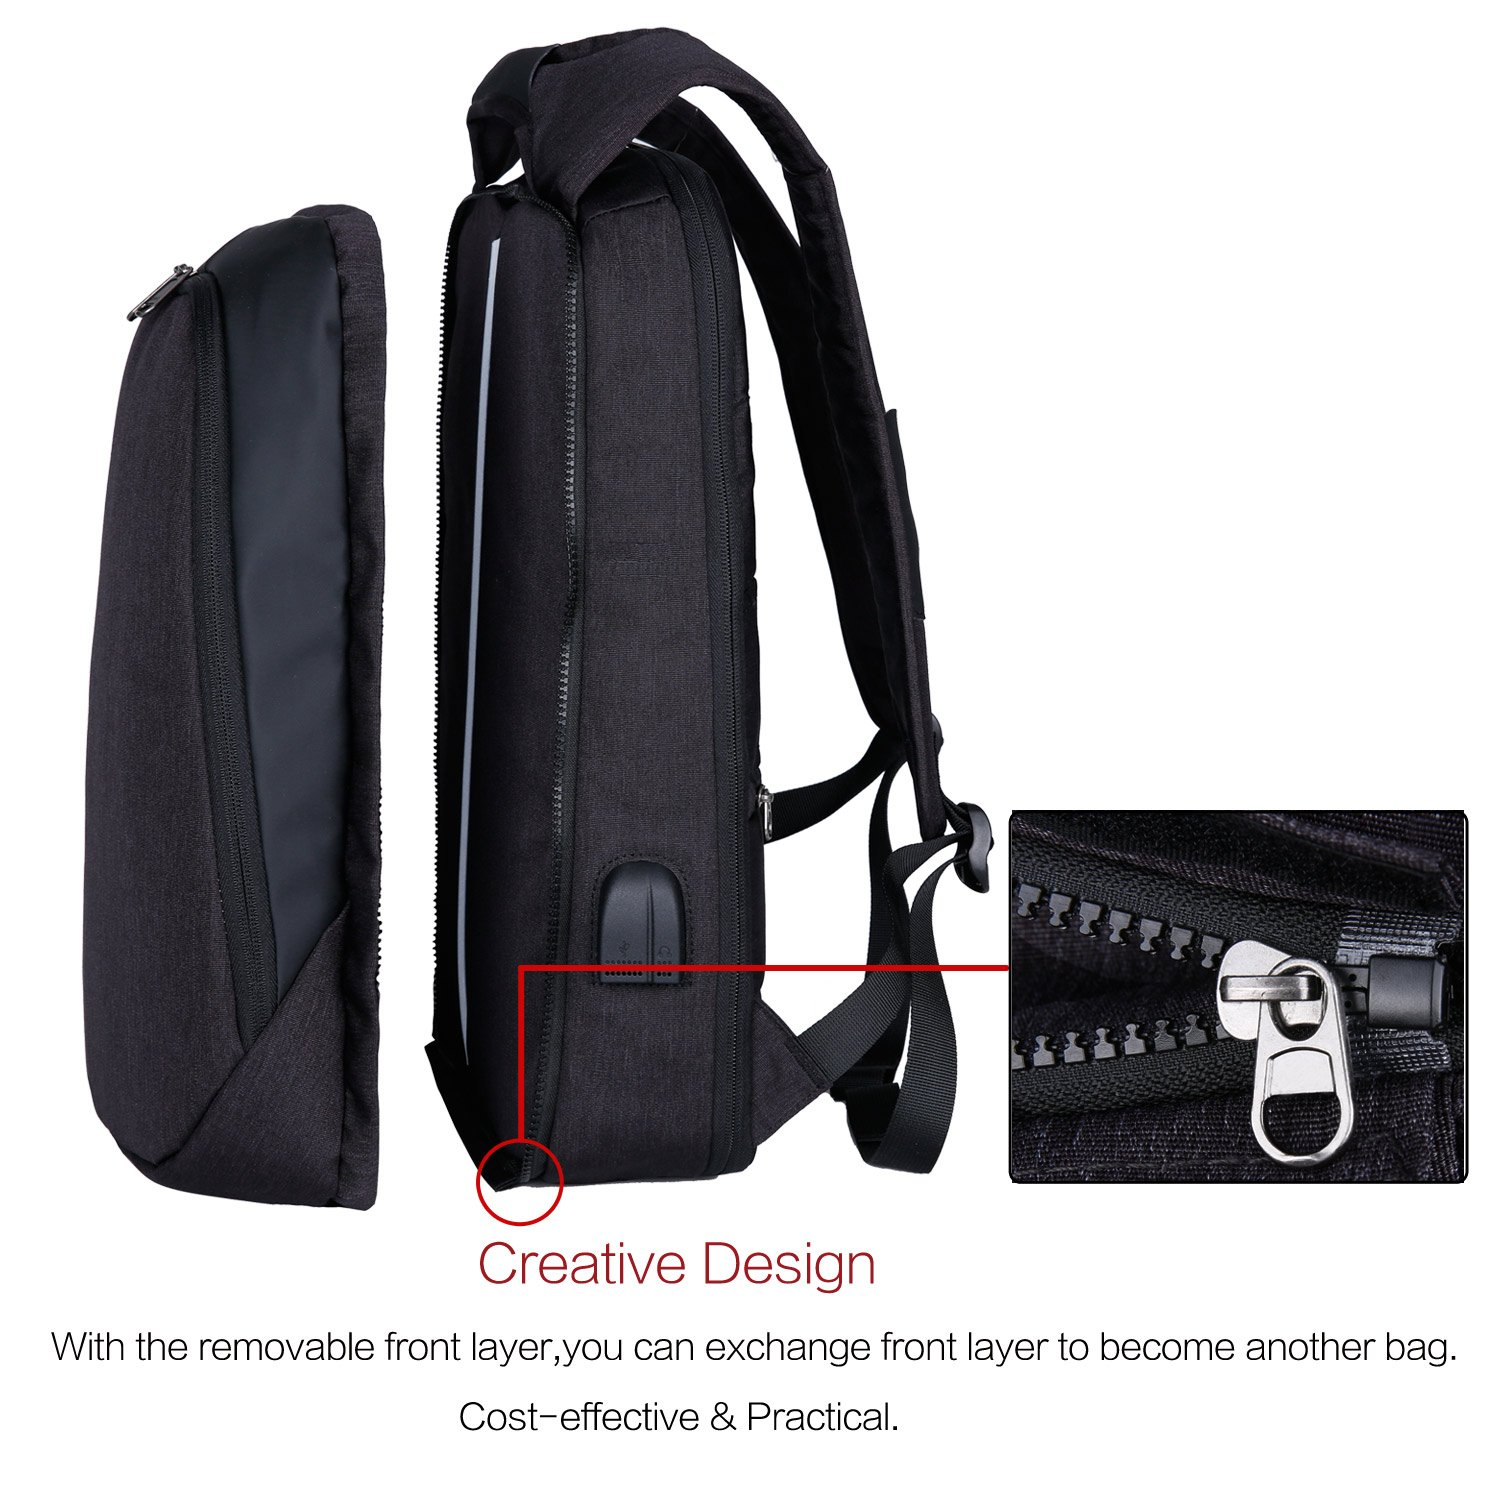 Amazon.com: KEYNEW Anti-thief Convertible Laptop Backpack USB Charging Bag with Removable Front Layer for Men Women 17 Inch (KY806H, Black): Computers & ...